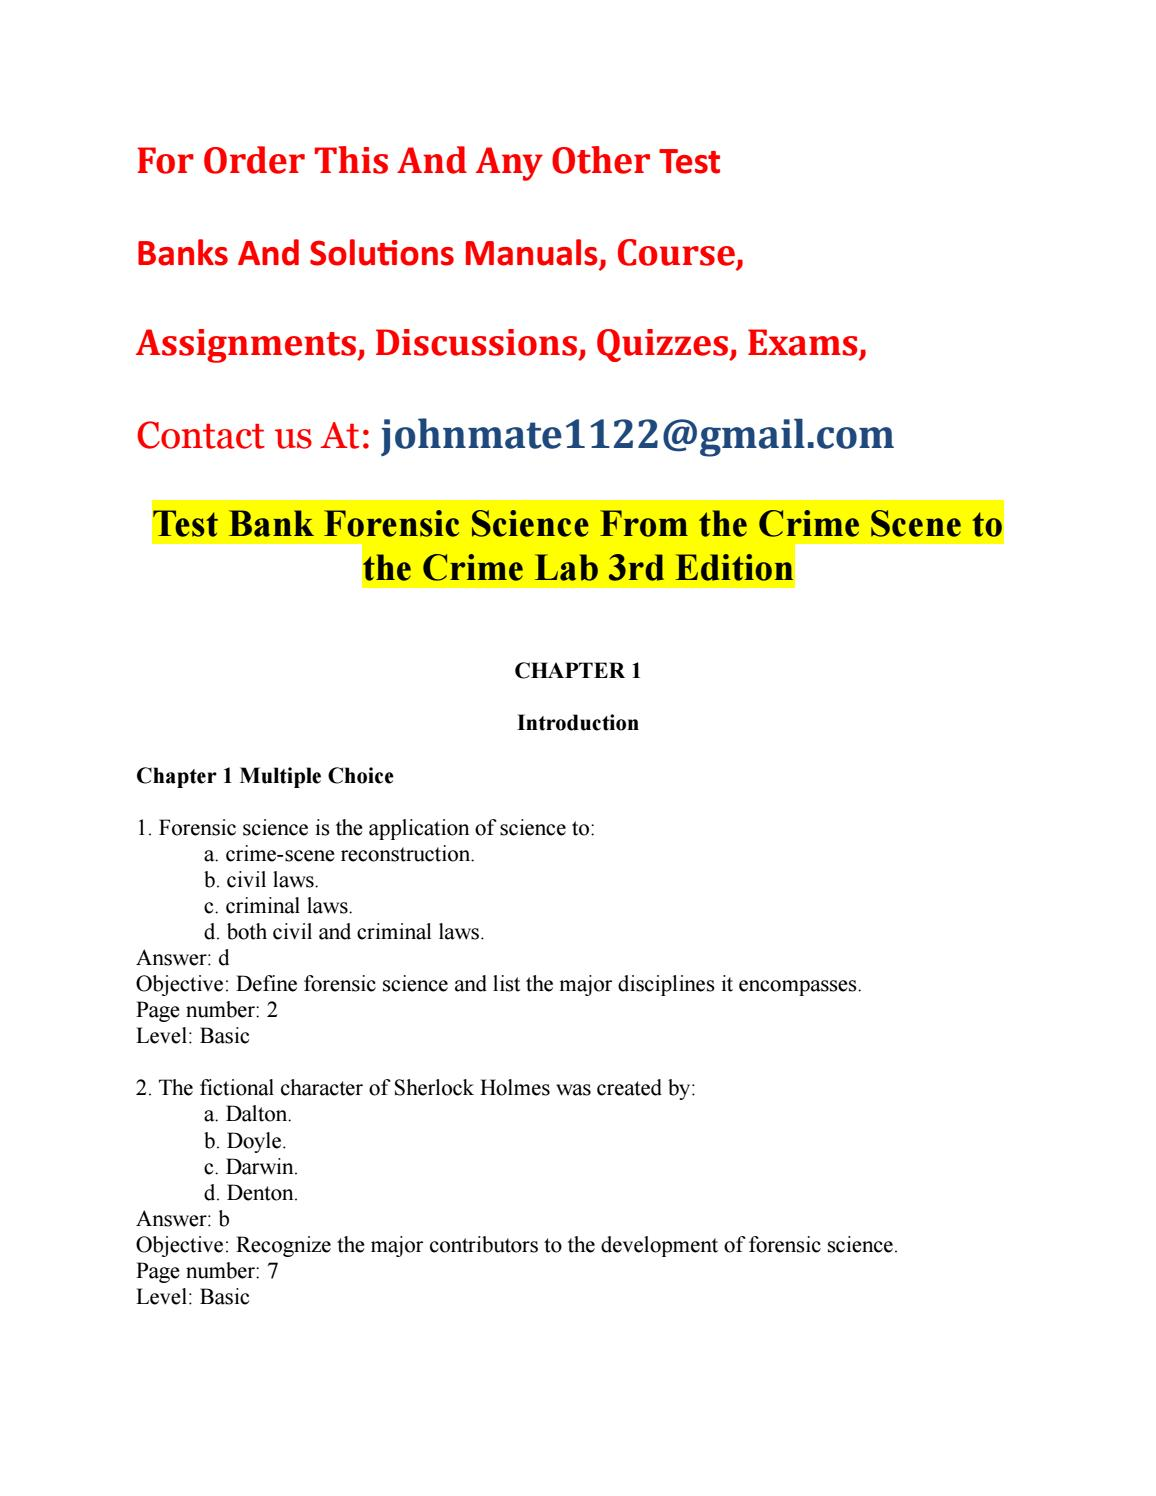 Test Bank Forensic Science From The Crime Scene To The Crime Lab 3rd Edition By Kami1lara Issuu